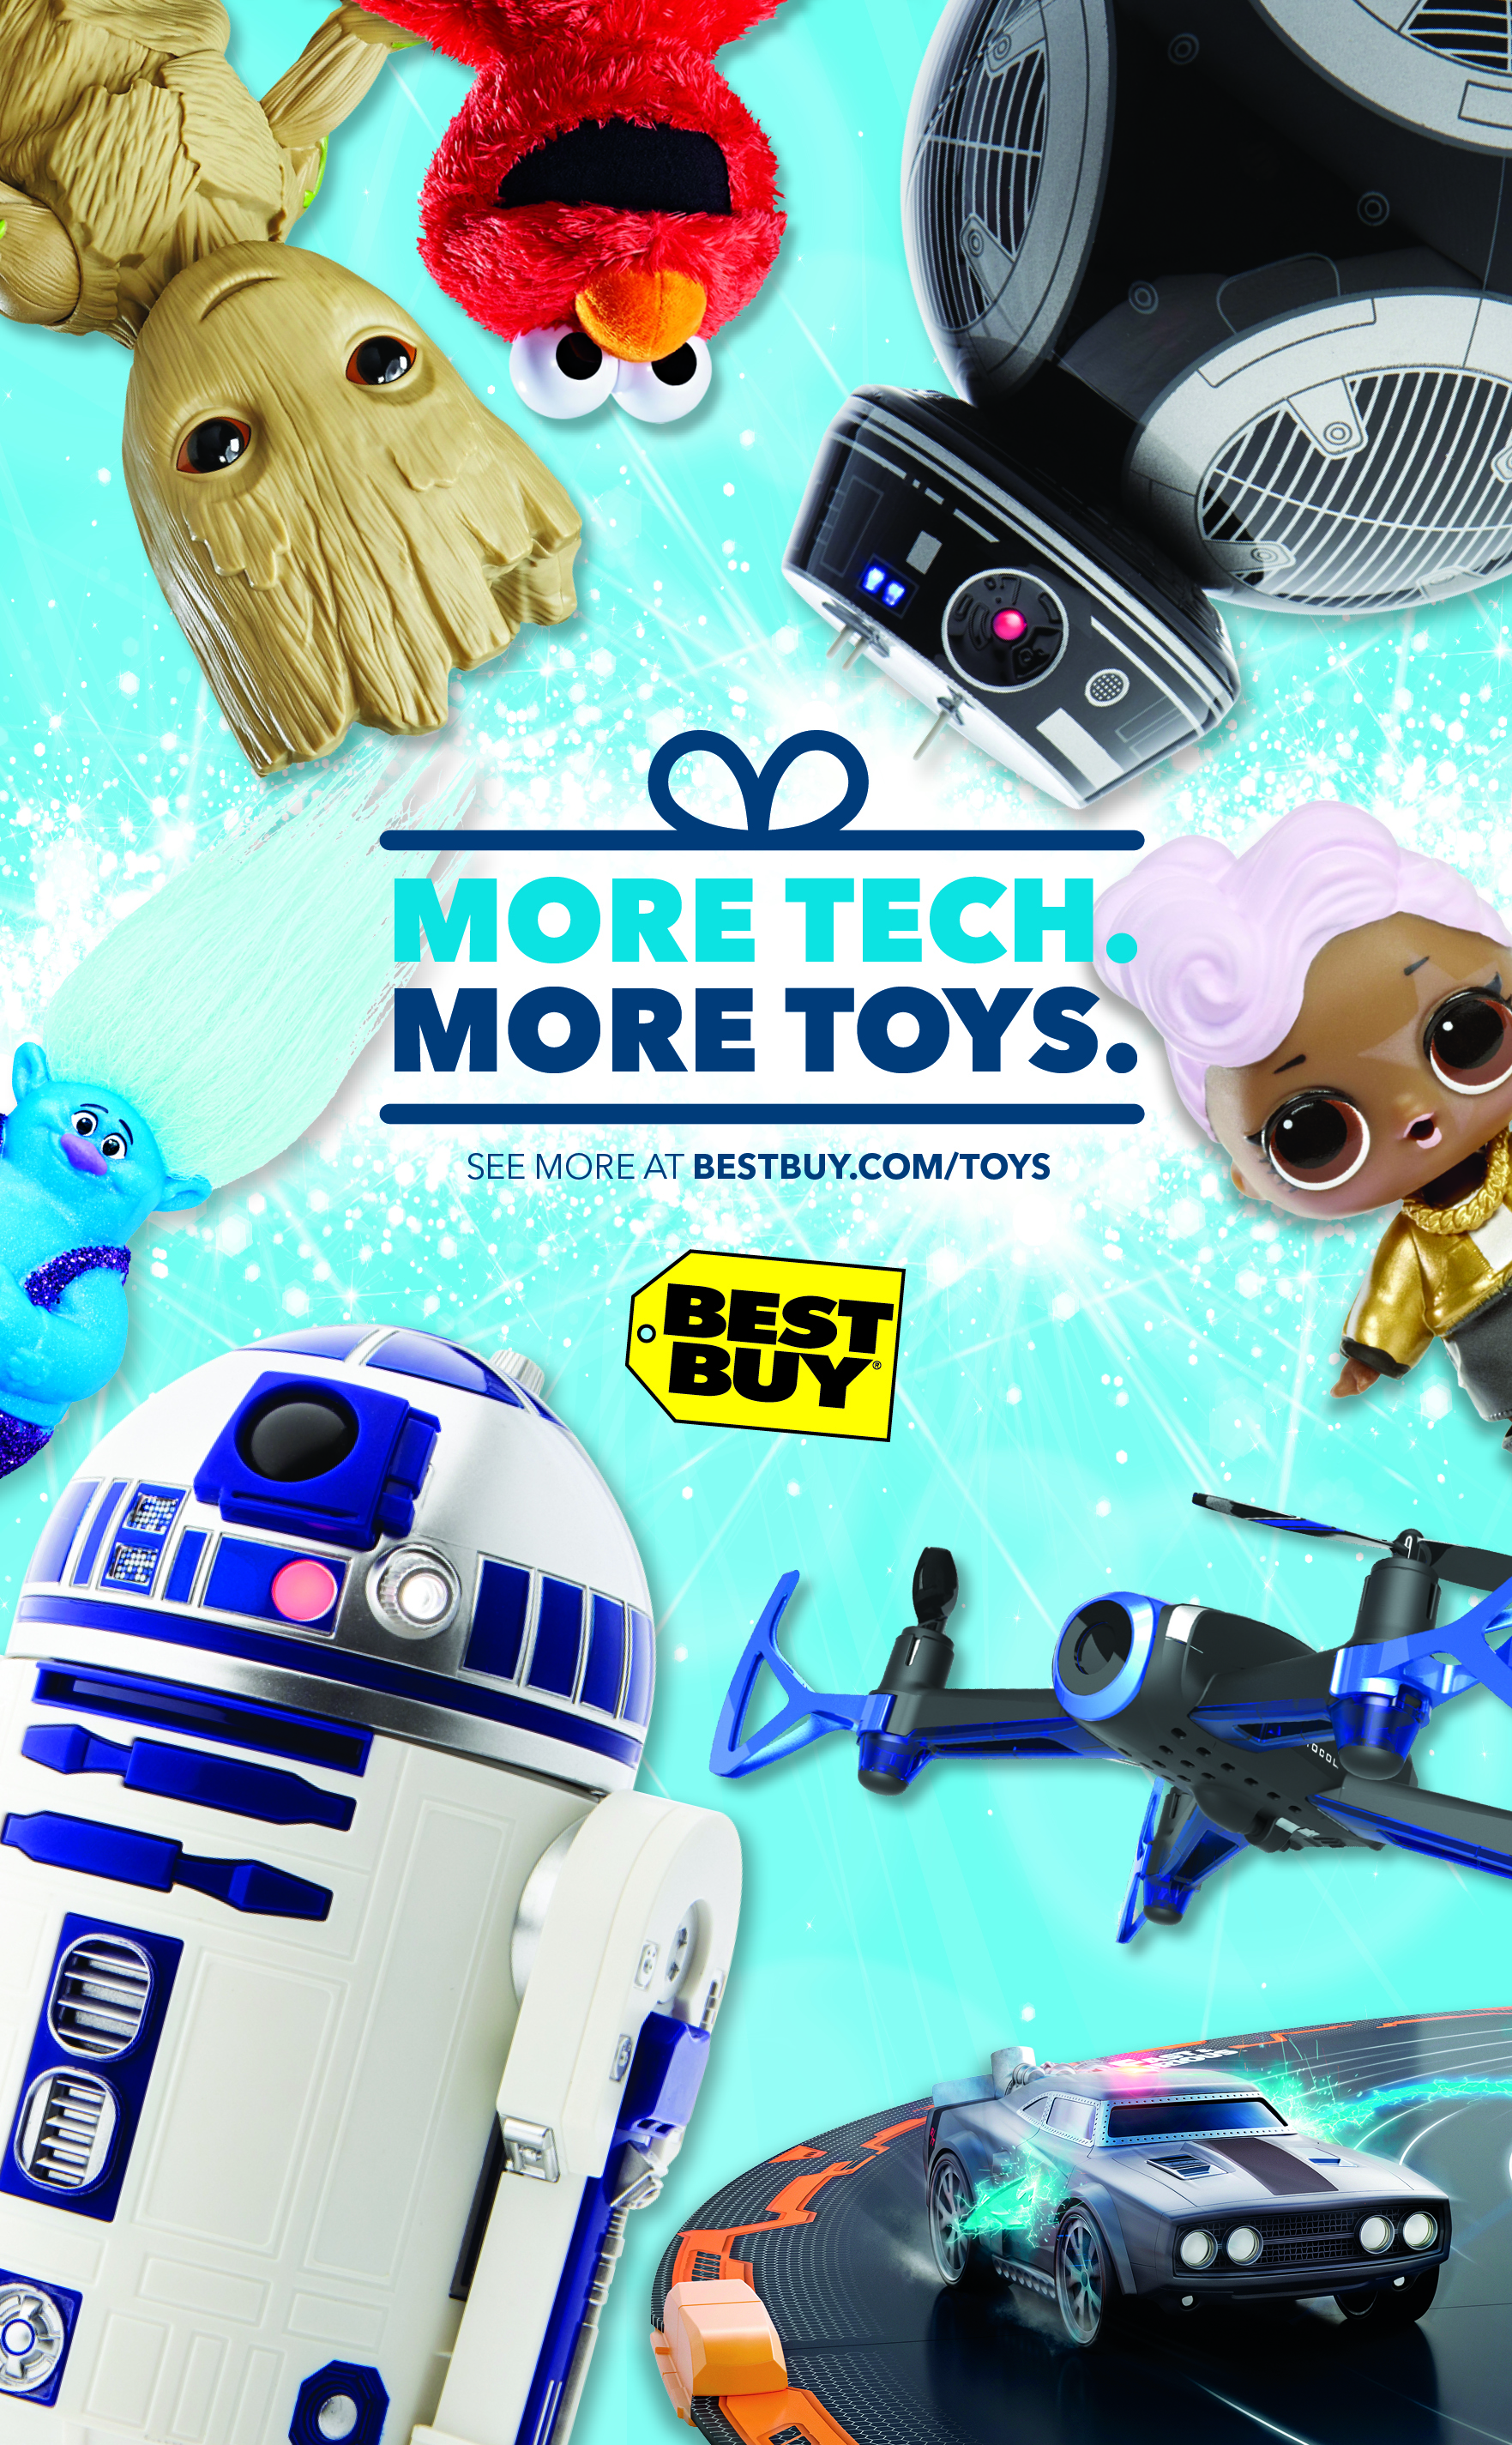 Toys For Holiday : Get the coolest holiday toys bestbuy ad megachristmas